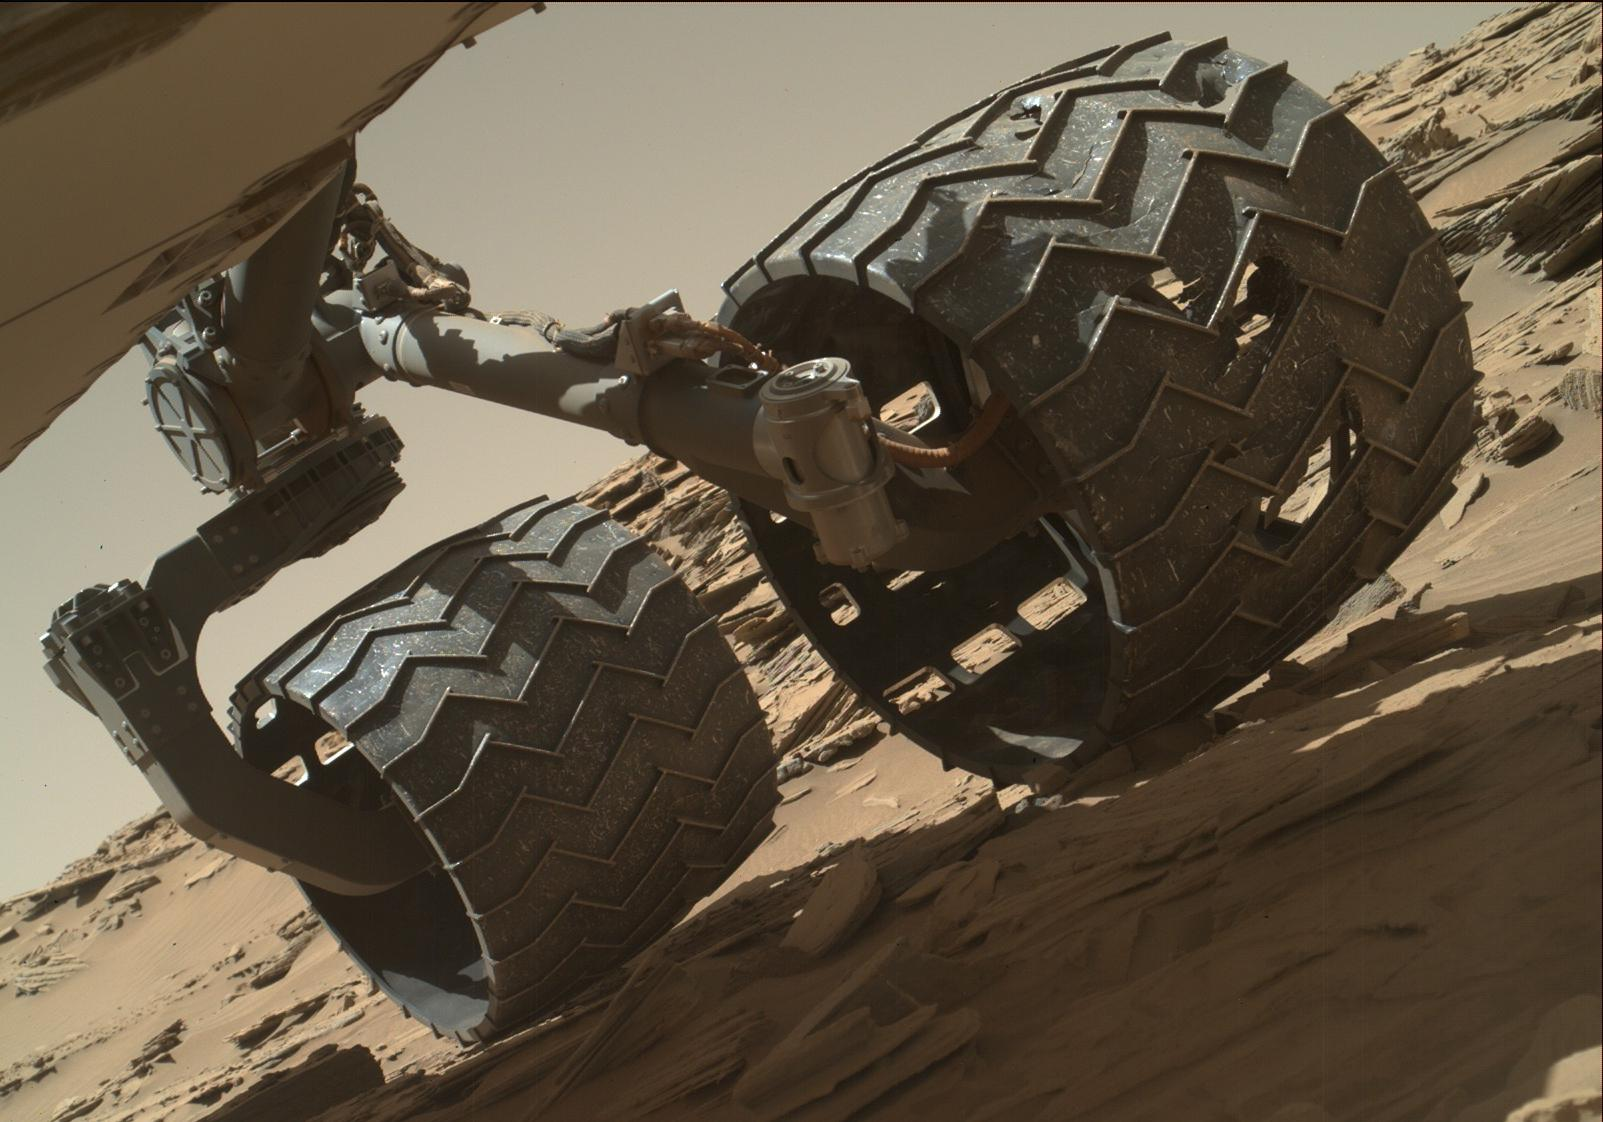 Amazing Mars Photos by NASA's Curiosity Rover (Latest Images)